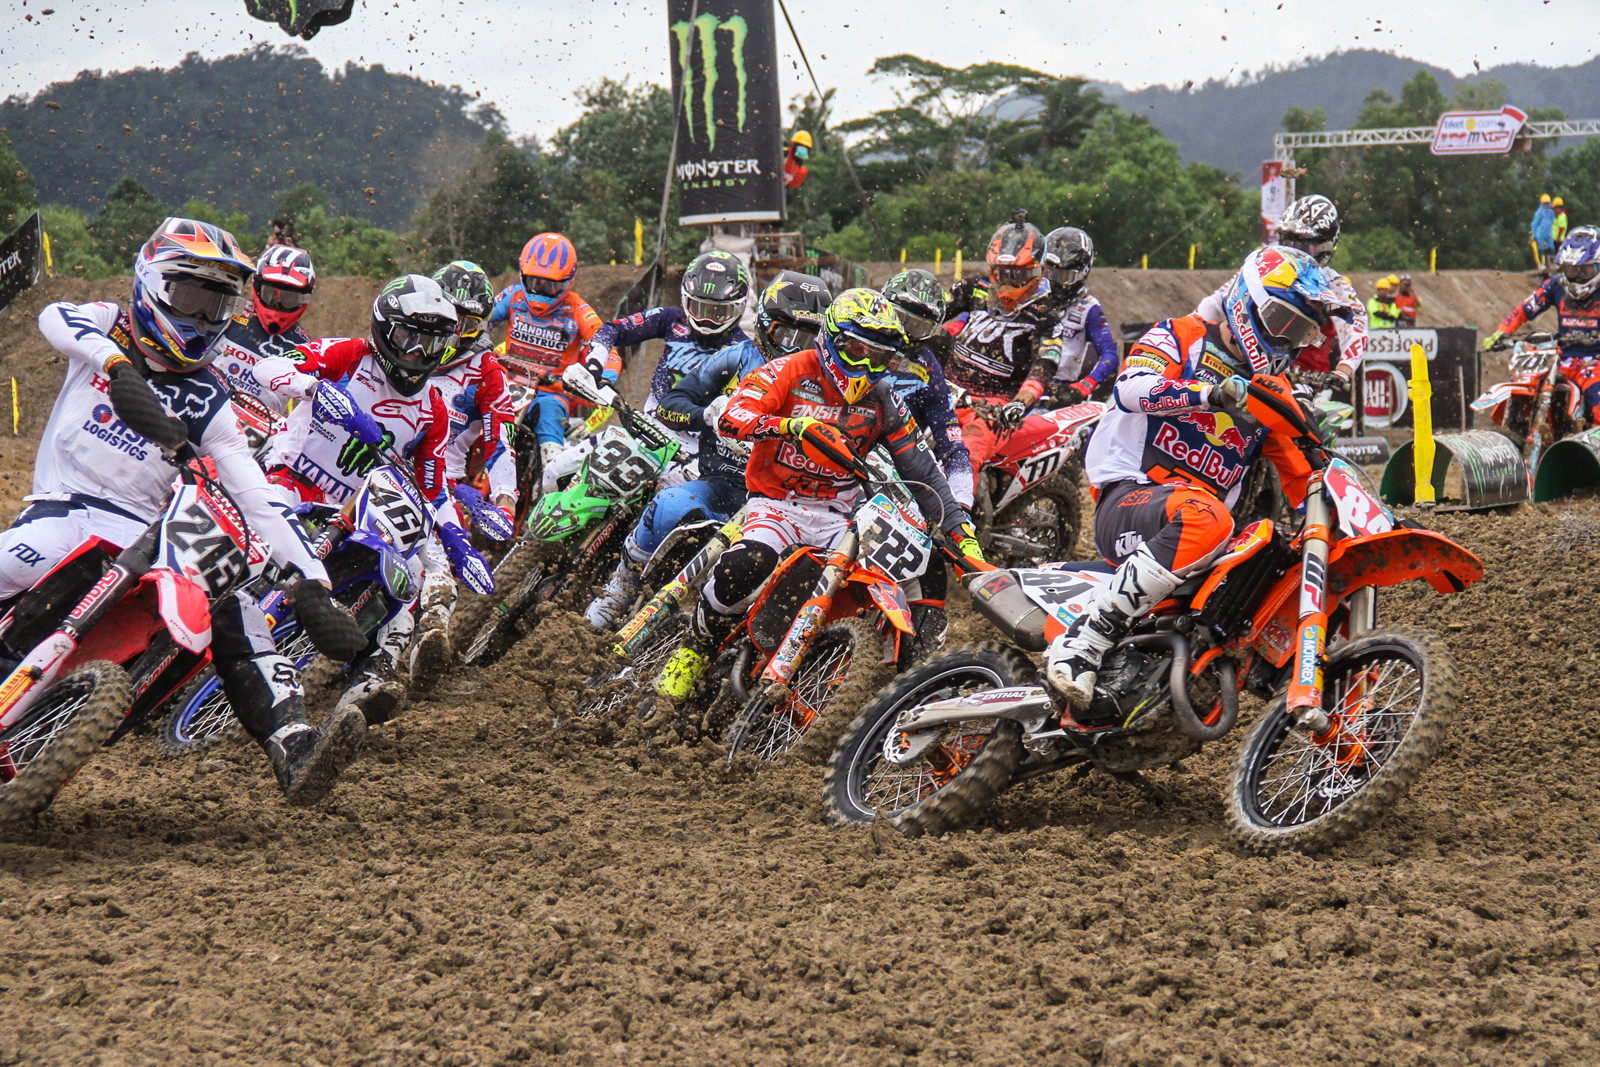 Did anyone expect any less of Jeffrey Herlings? Injured or not, he's the top of the field this year.